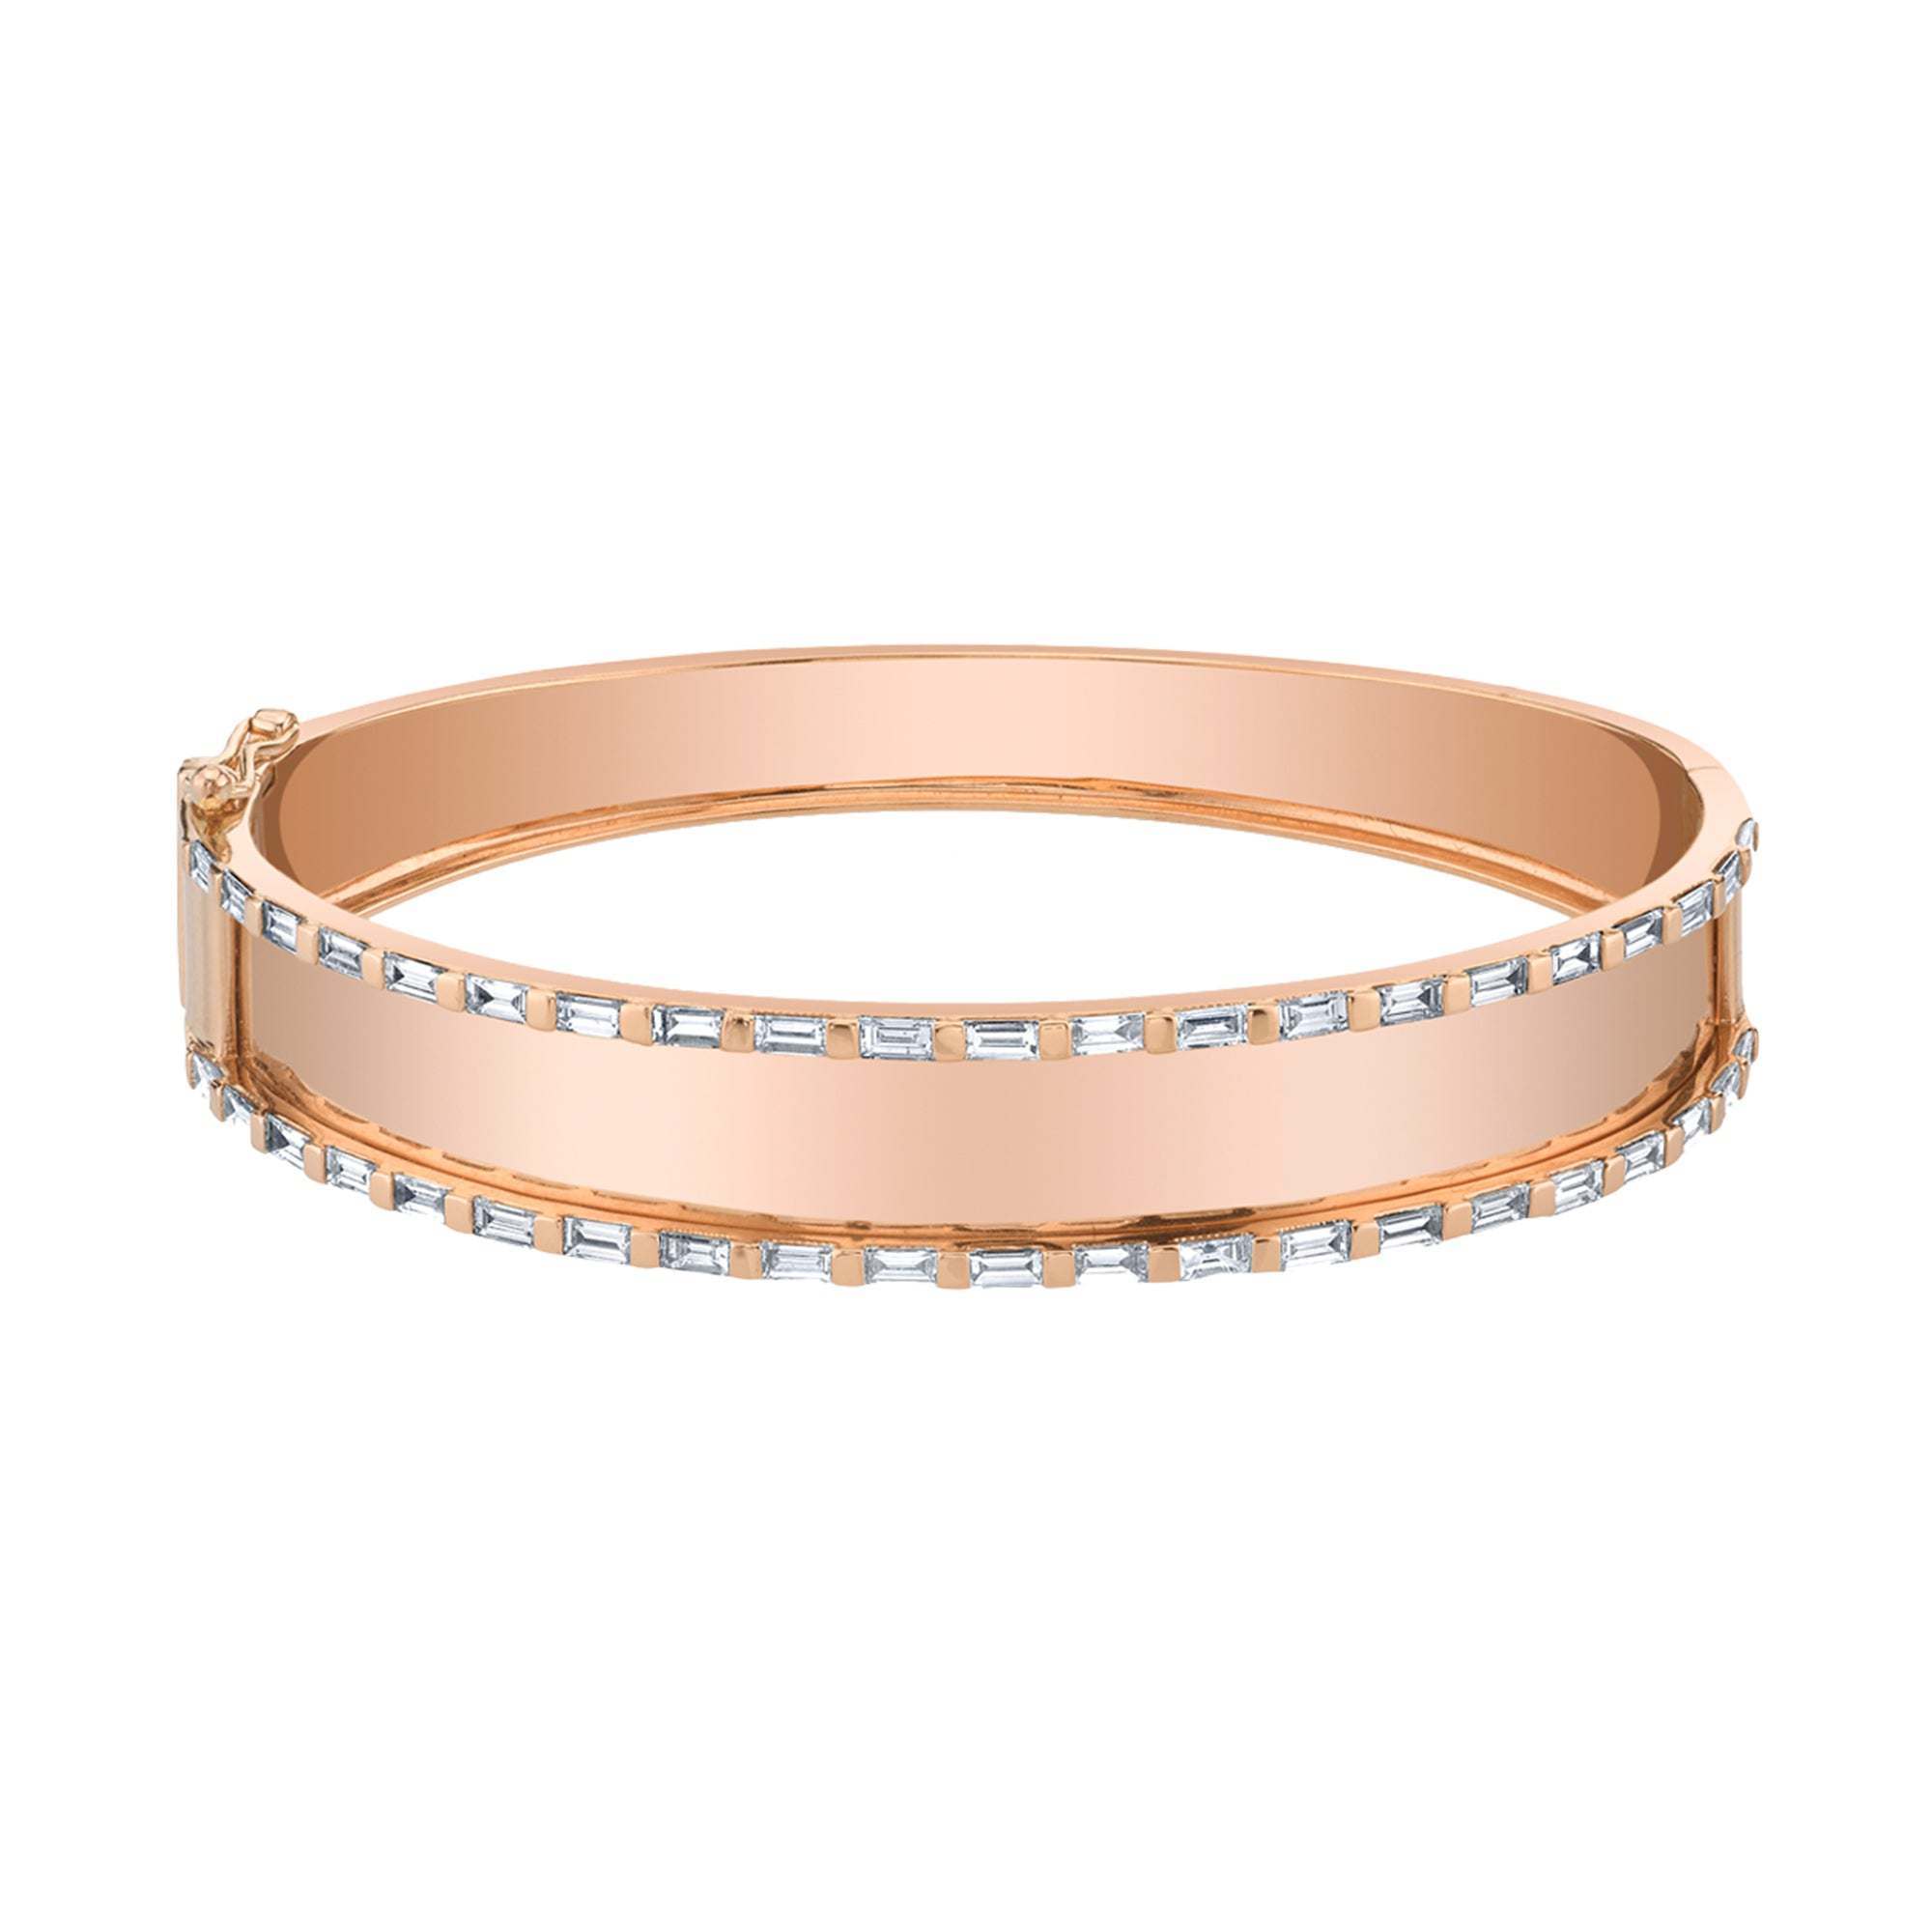 Gold White Diamond Essential Baguette Nameplate Bangle by Shay for Broken English Jewlery